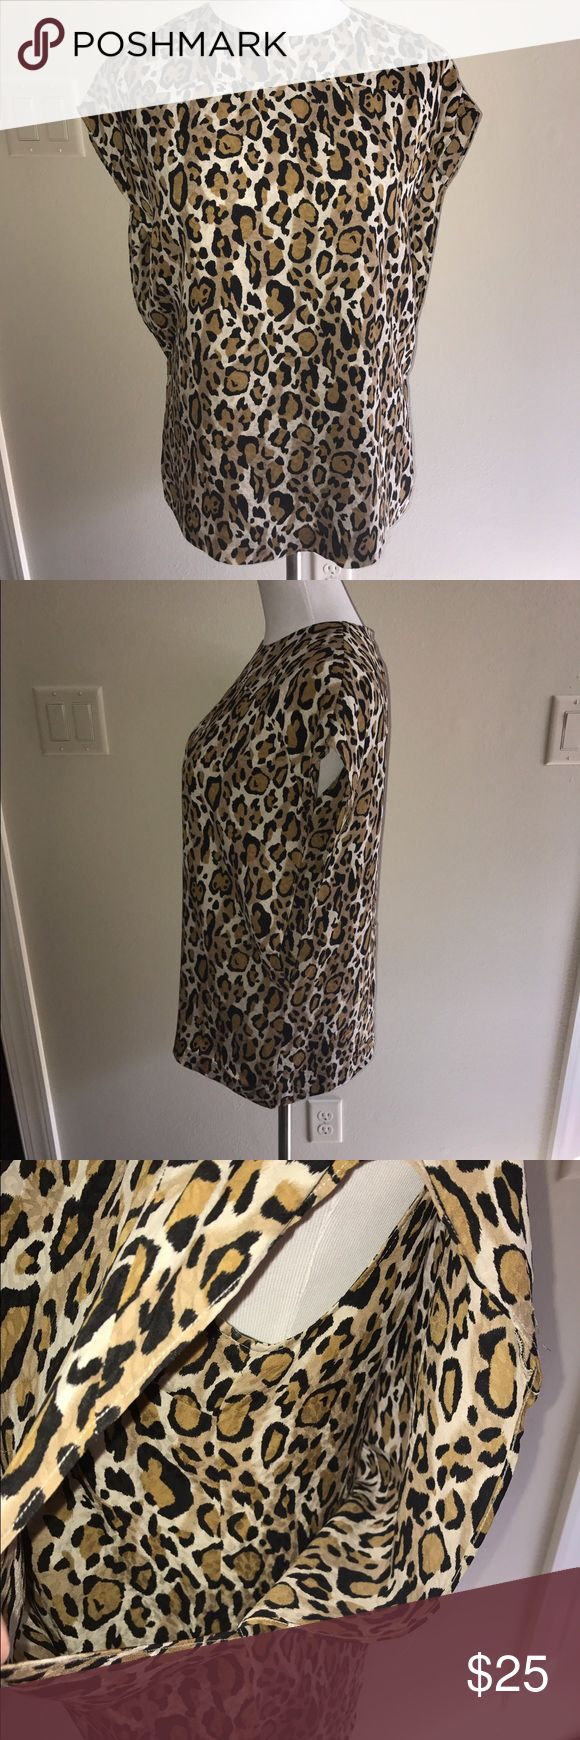 Tory Burch Silk leopard pullover size 6 Tory Burch 100% silk Leopard pullover size 6. Perfect condition, Tory Burch Tops Blouses